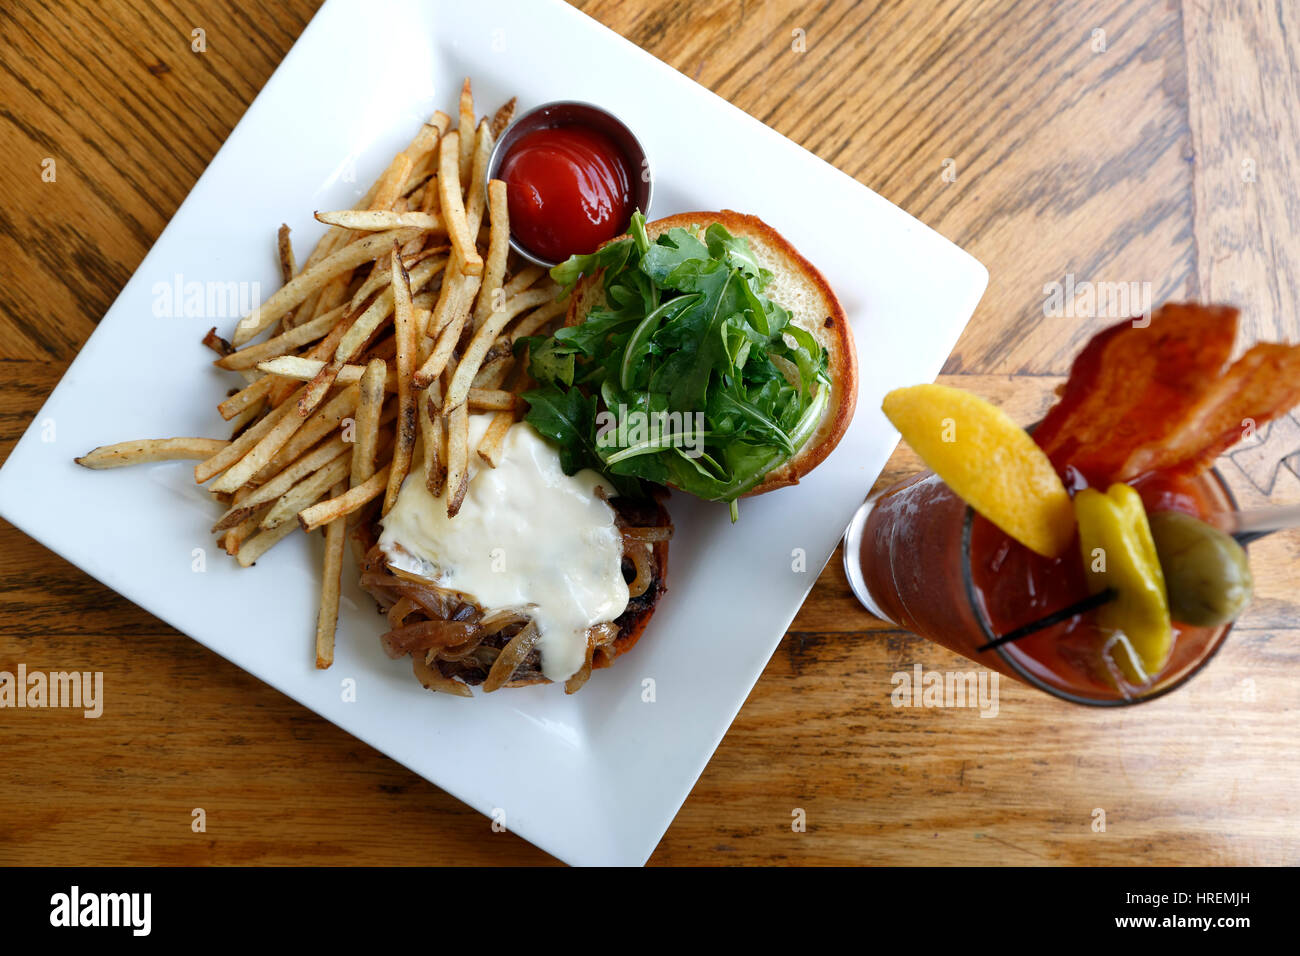 Bison Bistro Burger and fries with Bacon Bloody Mary, Dining Hall, Chautauqua Park, Boulder, Colorado USA - Stock Image